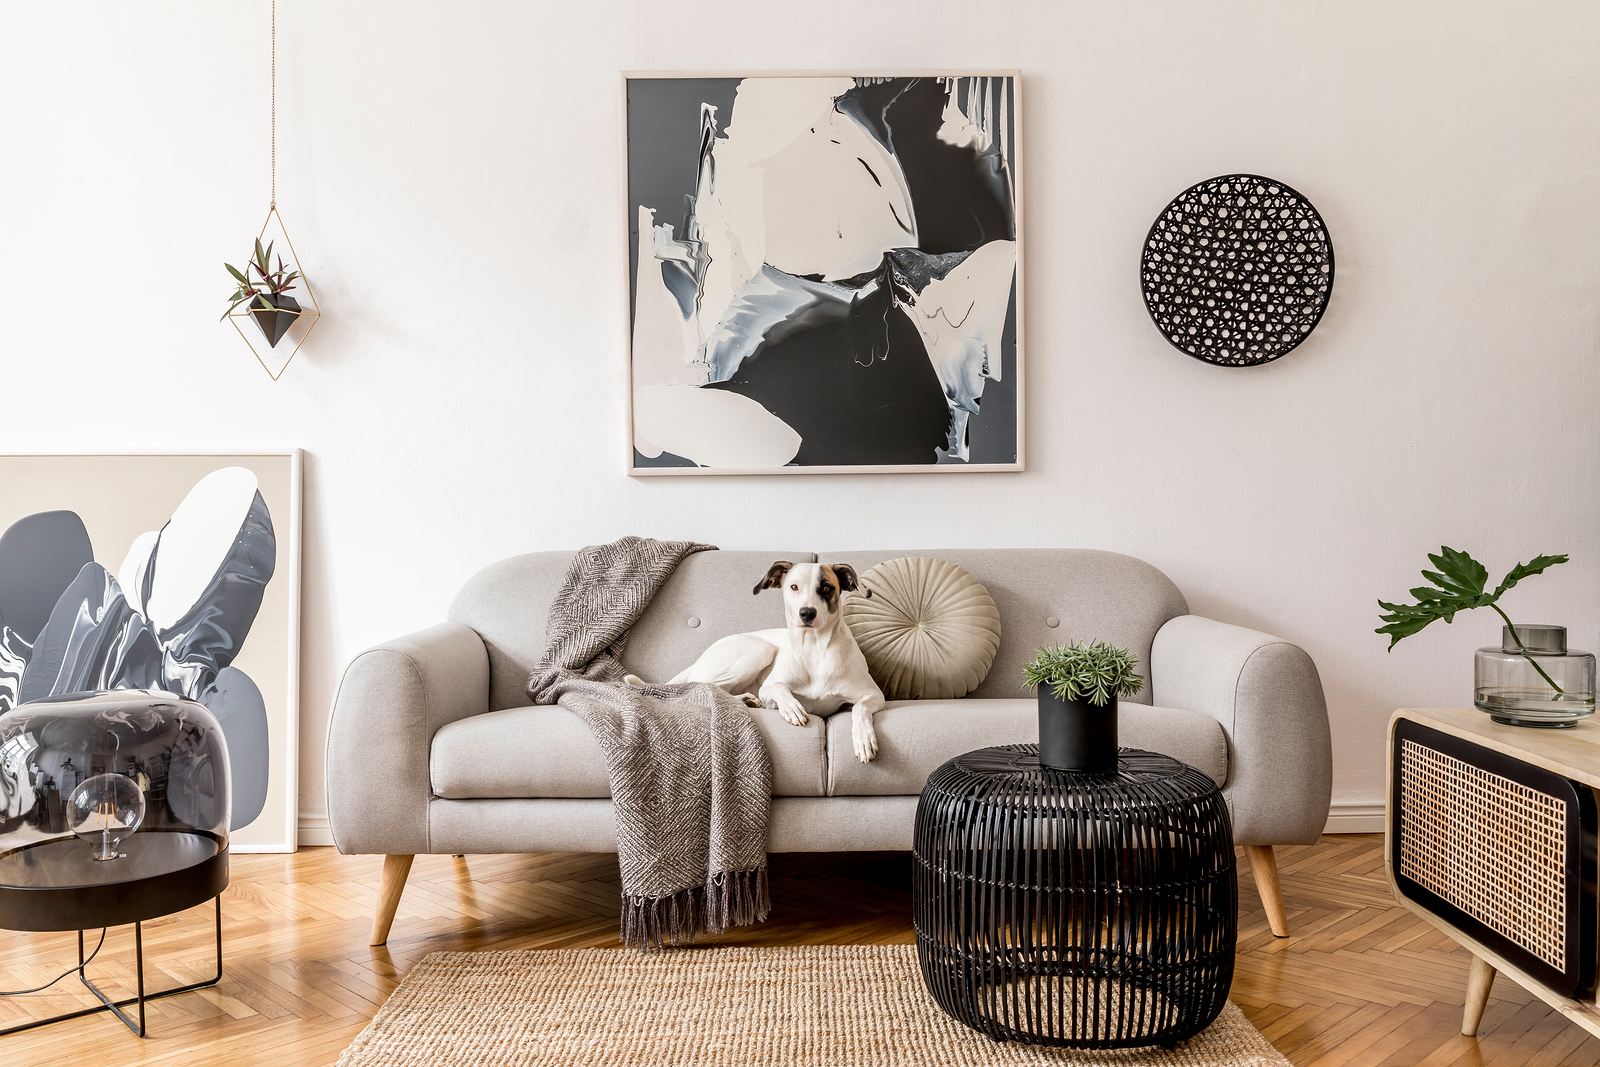 How to Pick the Perfect Art for Your Home